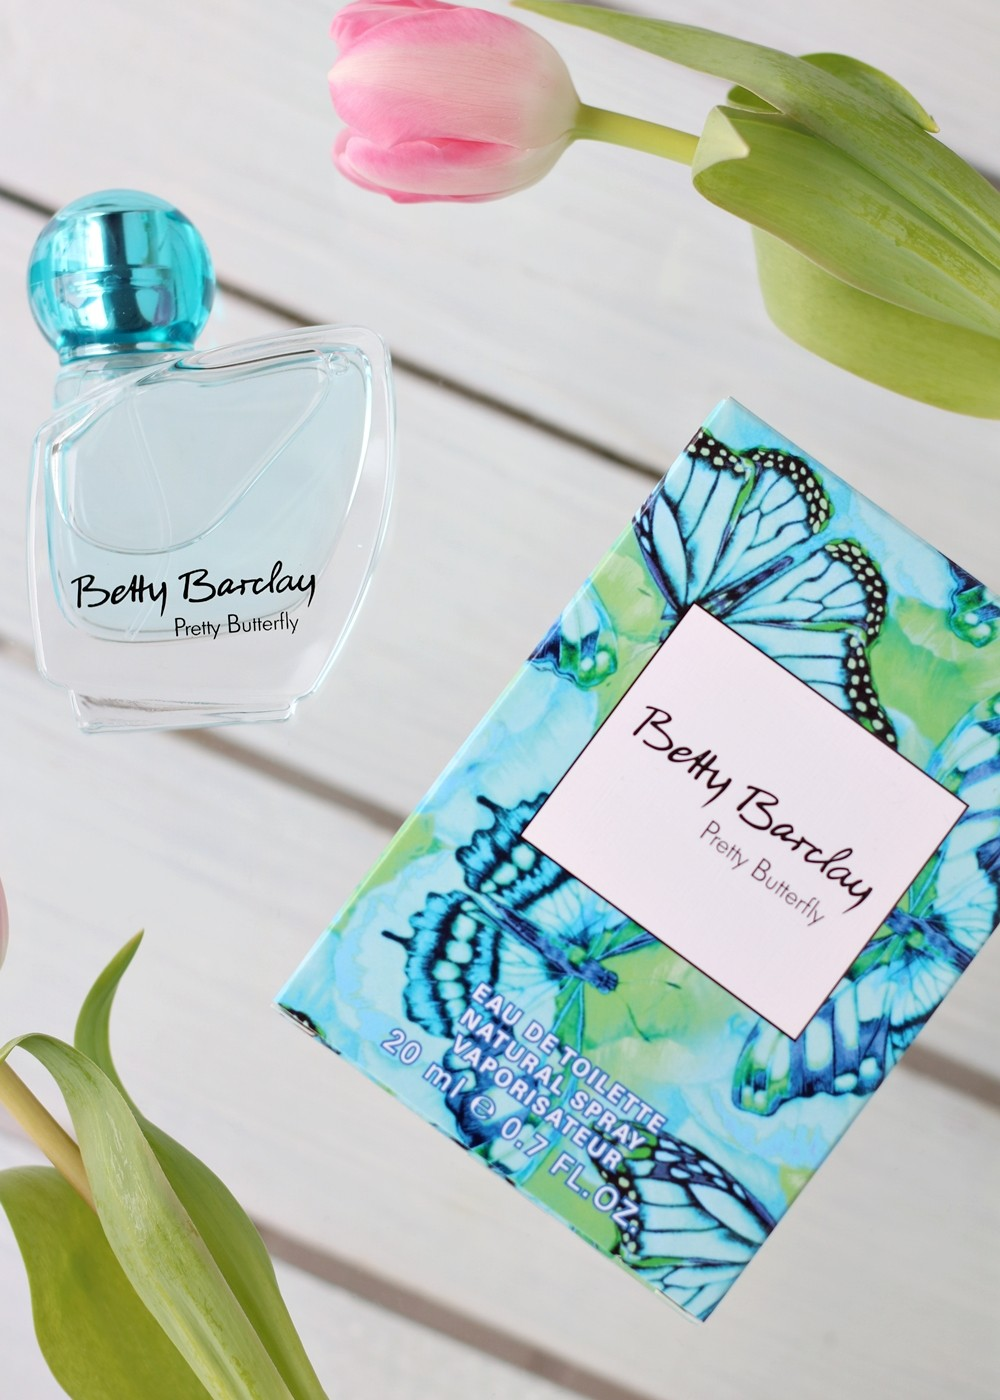 Betty Barclay Pretty Butterfly Parfum